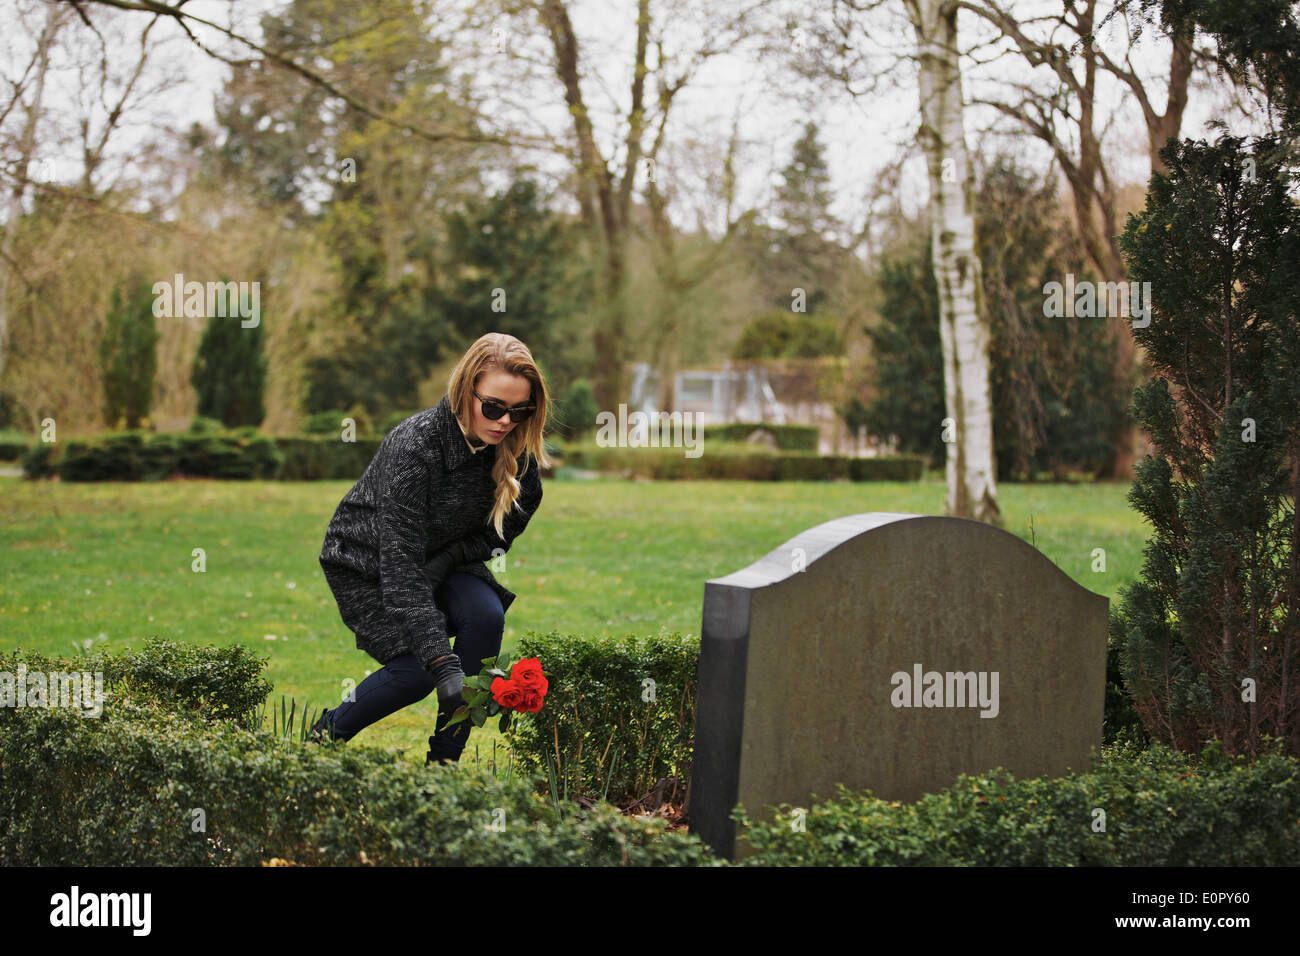 Young woman placing flowers on the grave of a deceased family member at cemetery. Young lady at the cemetery paying respects. - Stock Image